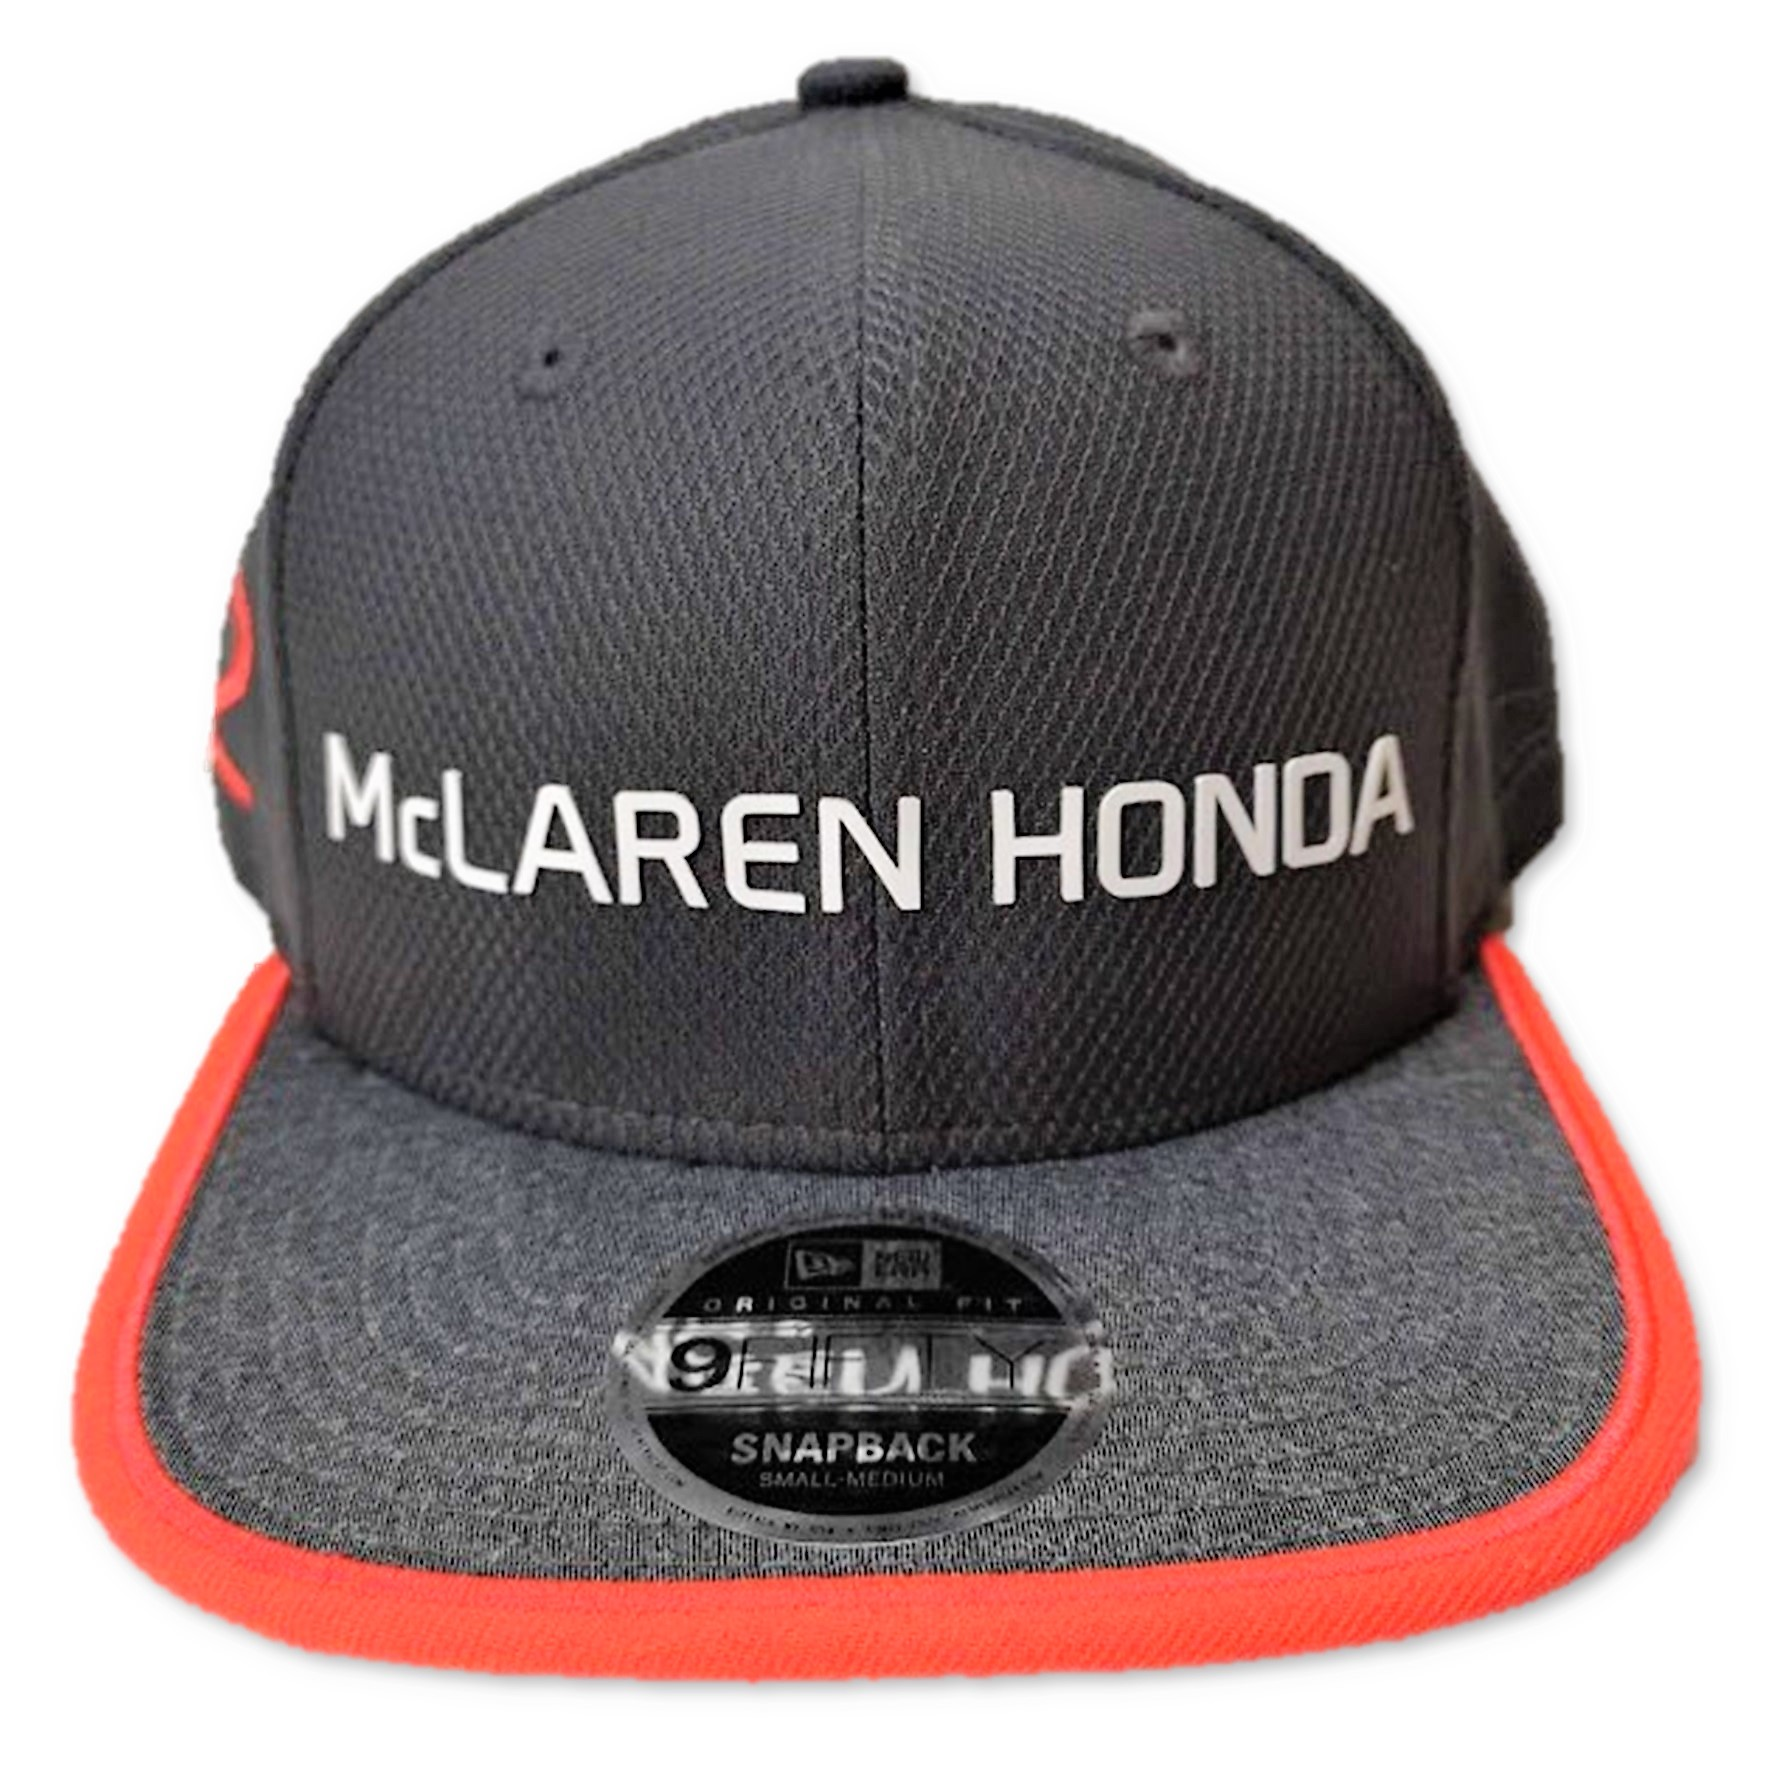 Cap Hat Formula One 1 McLaren Honda F1 Team Jenson Button Flat Peak Blue US